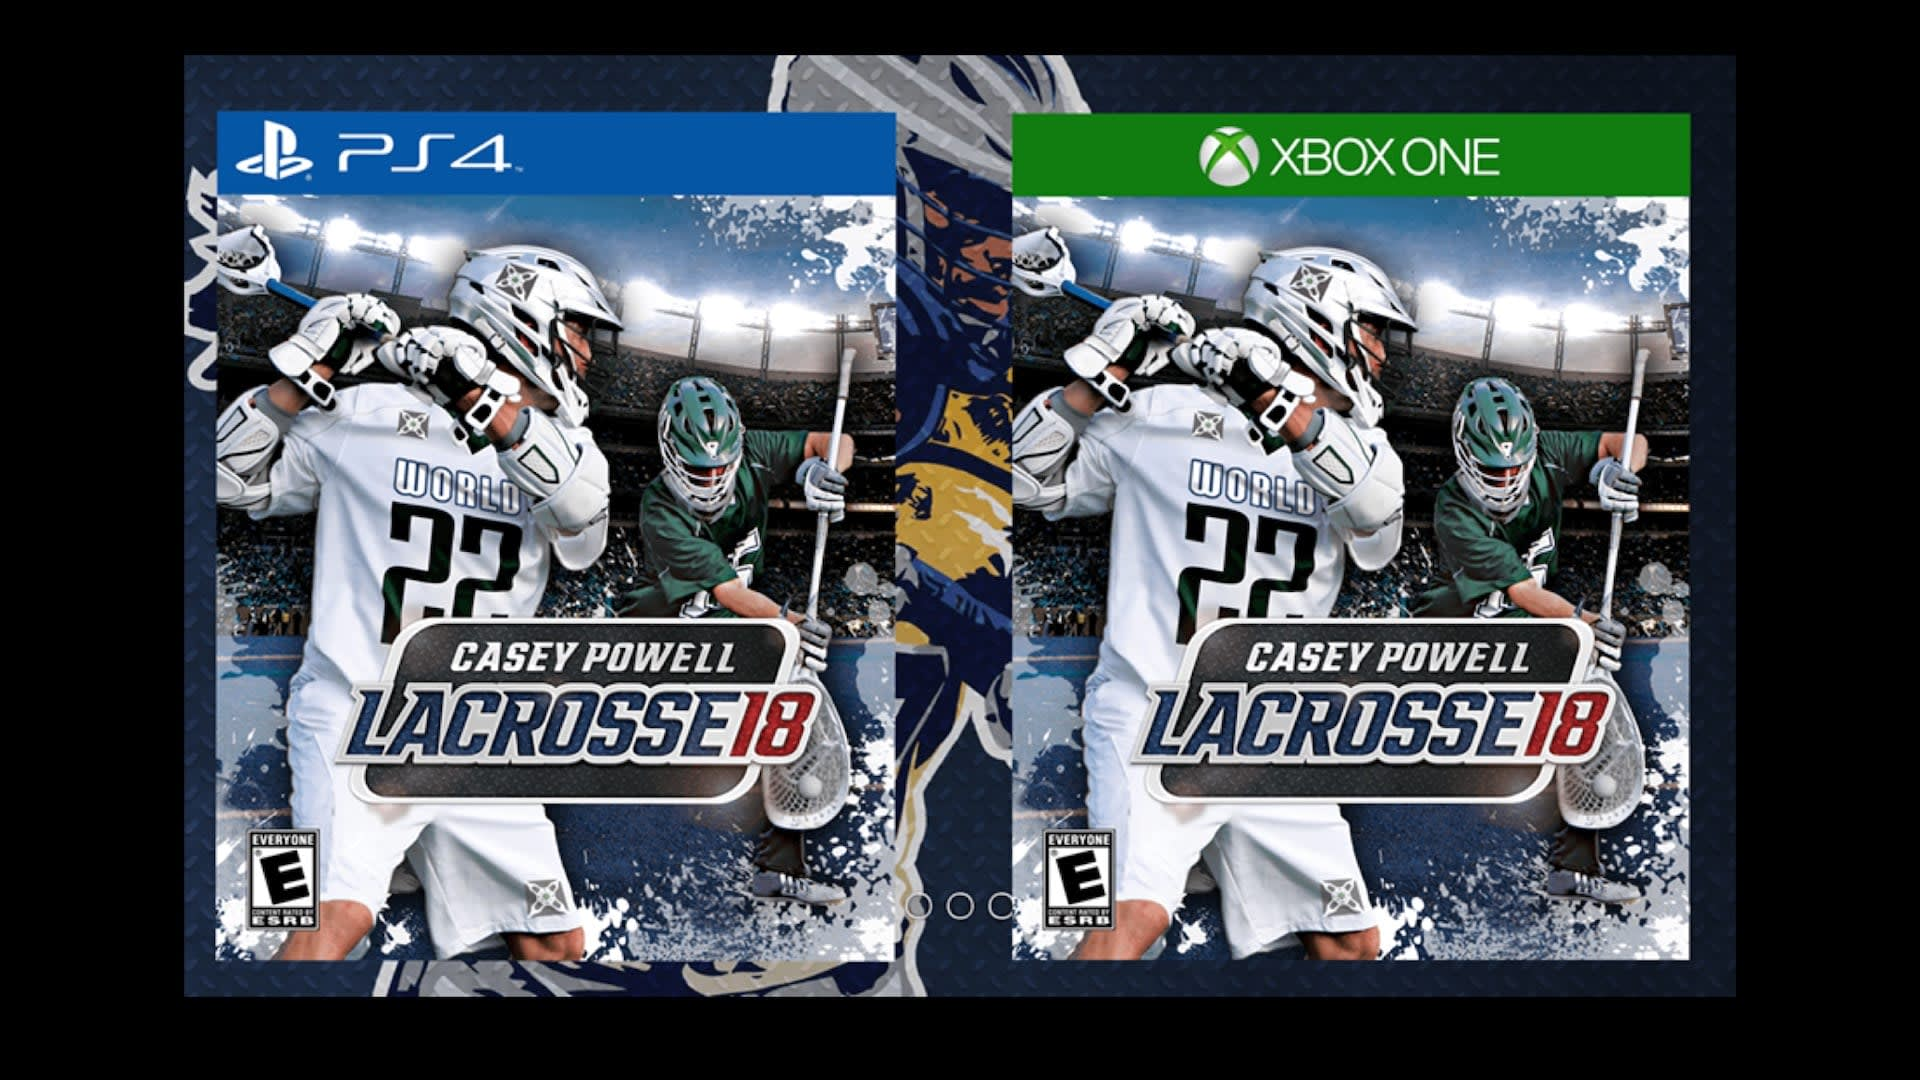 Casey Powell Lacrosse Video Game